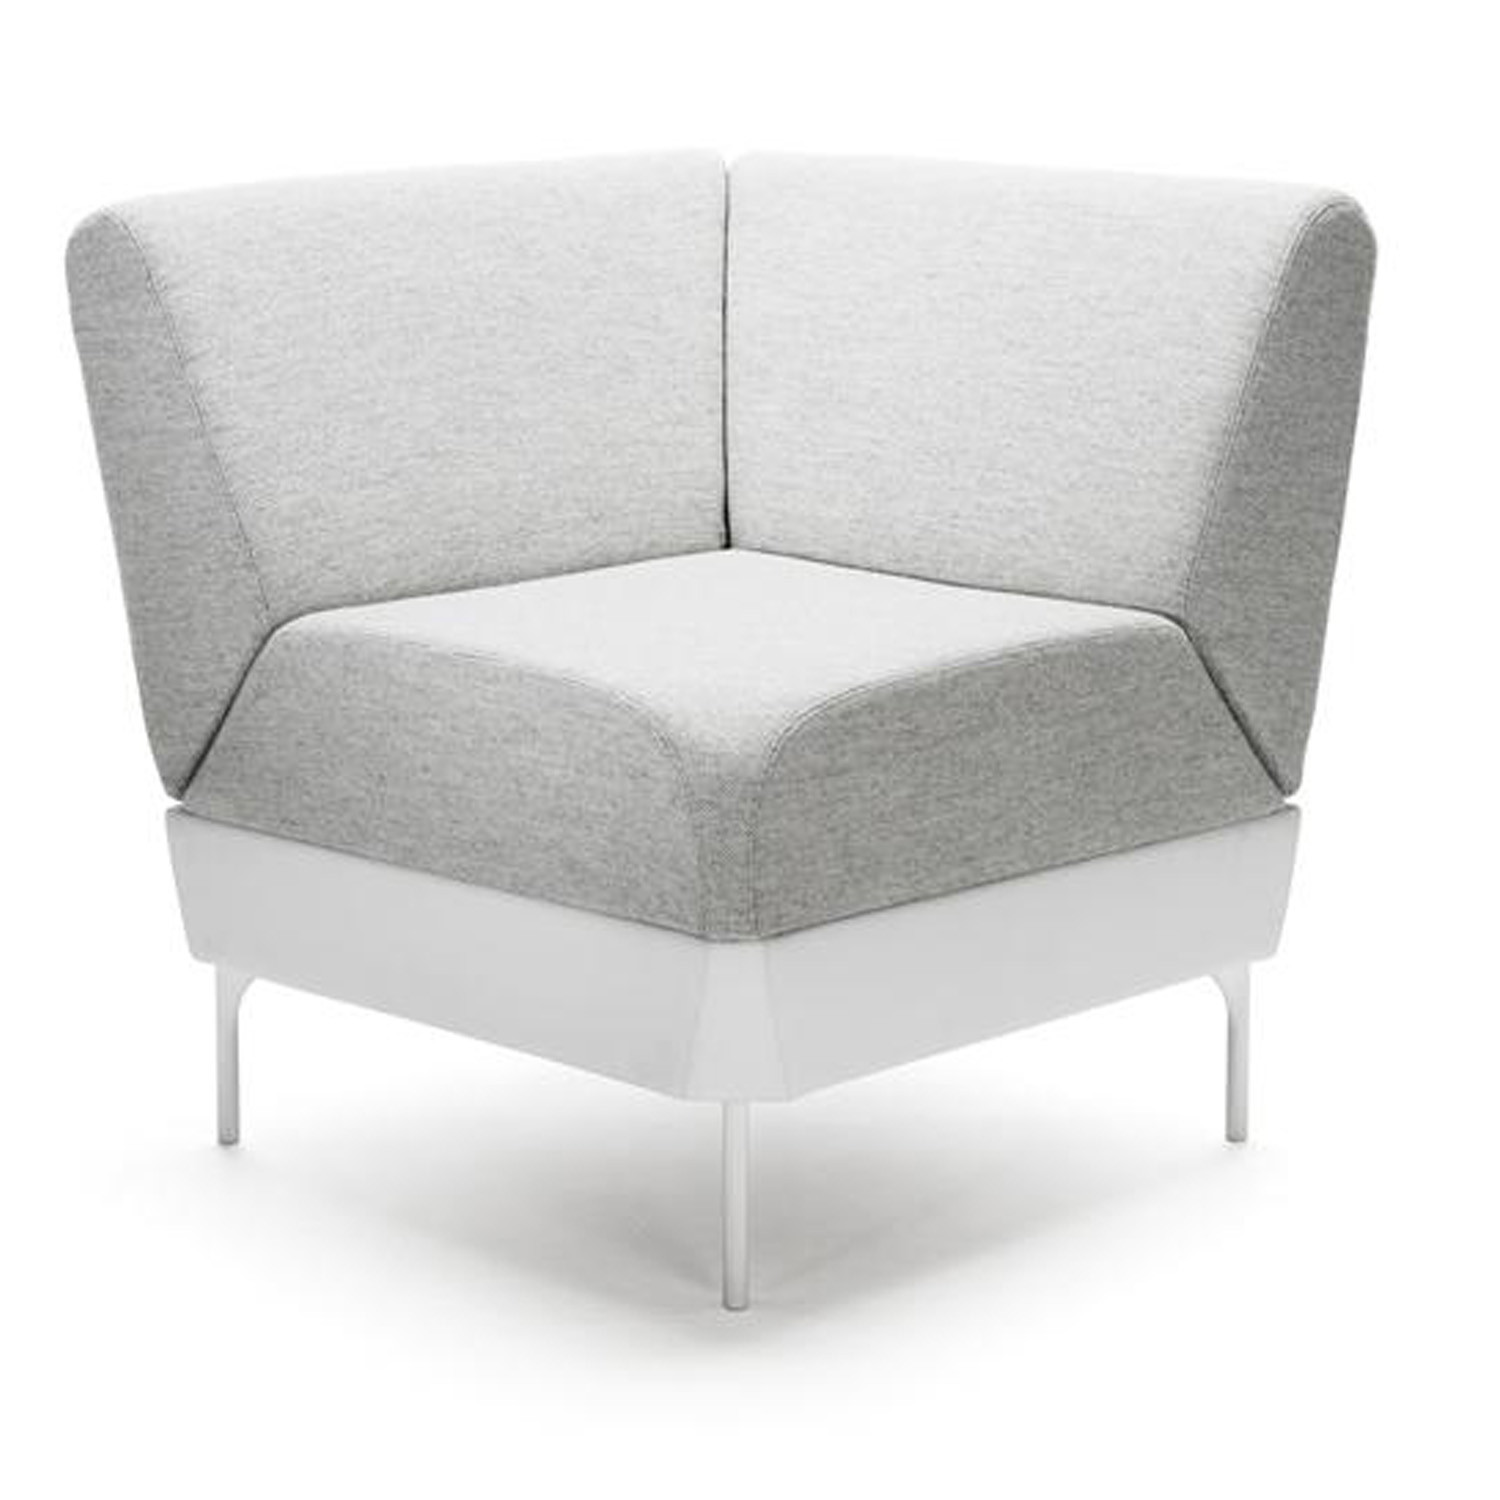 Addit Coner Sofa Unit